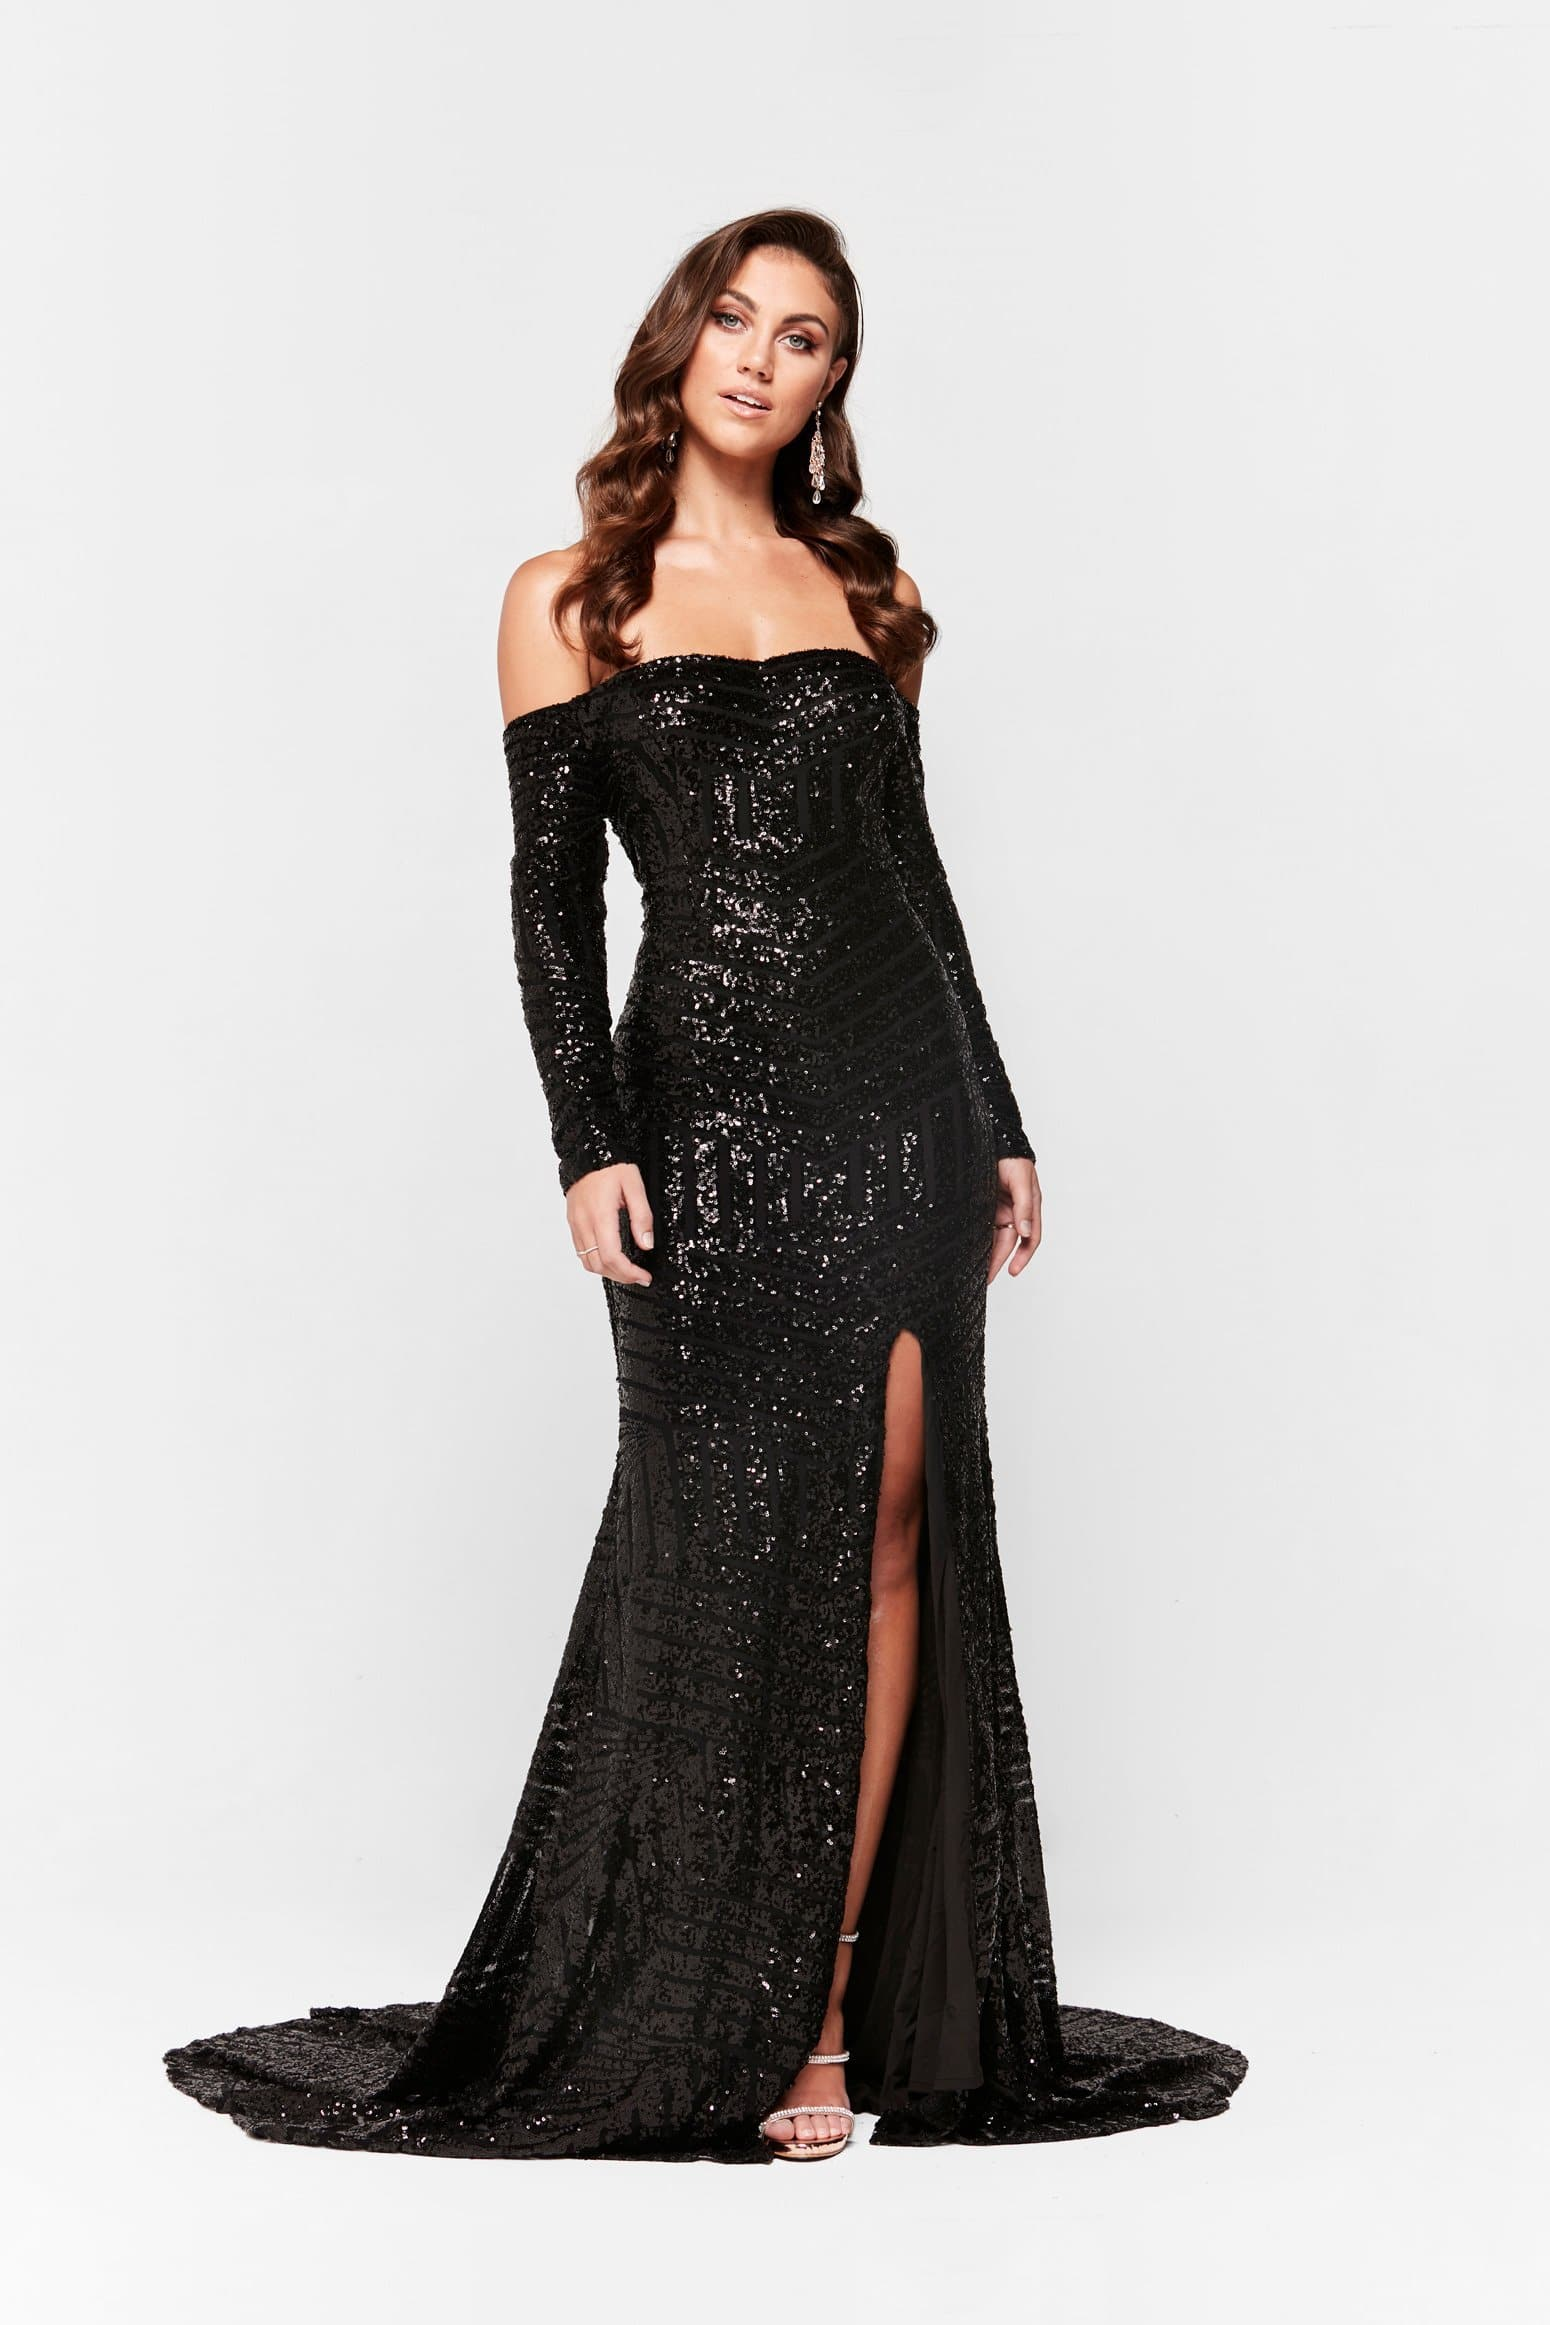 A&N Luxe Jade Off Shoulder Sequin Gown - Black